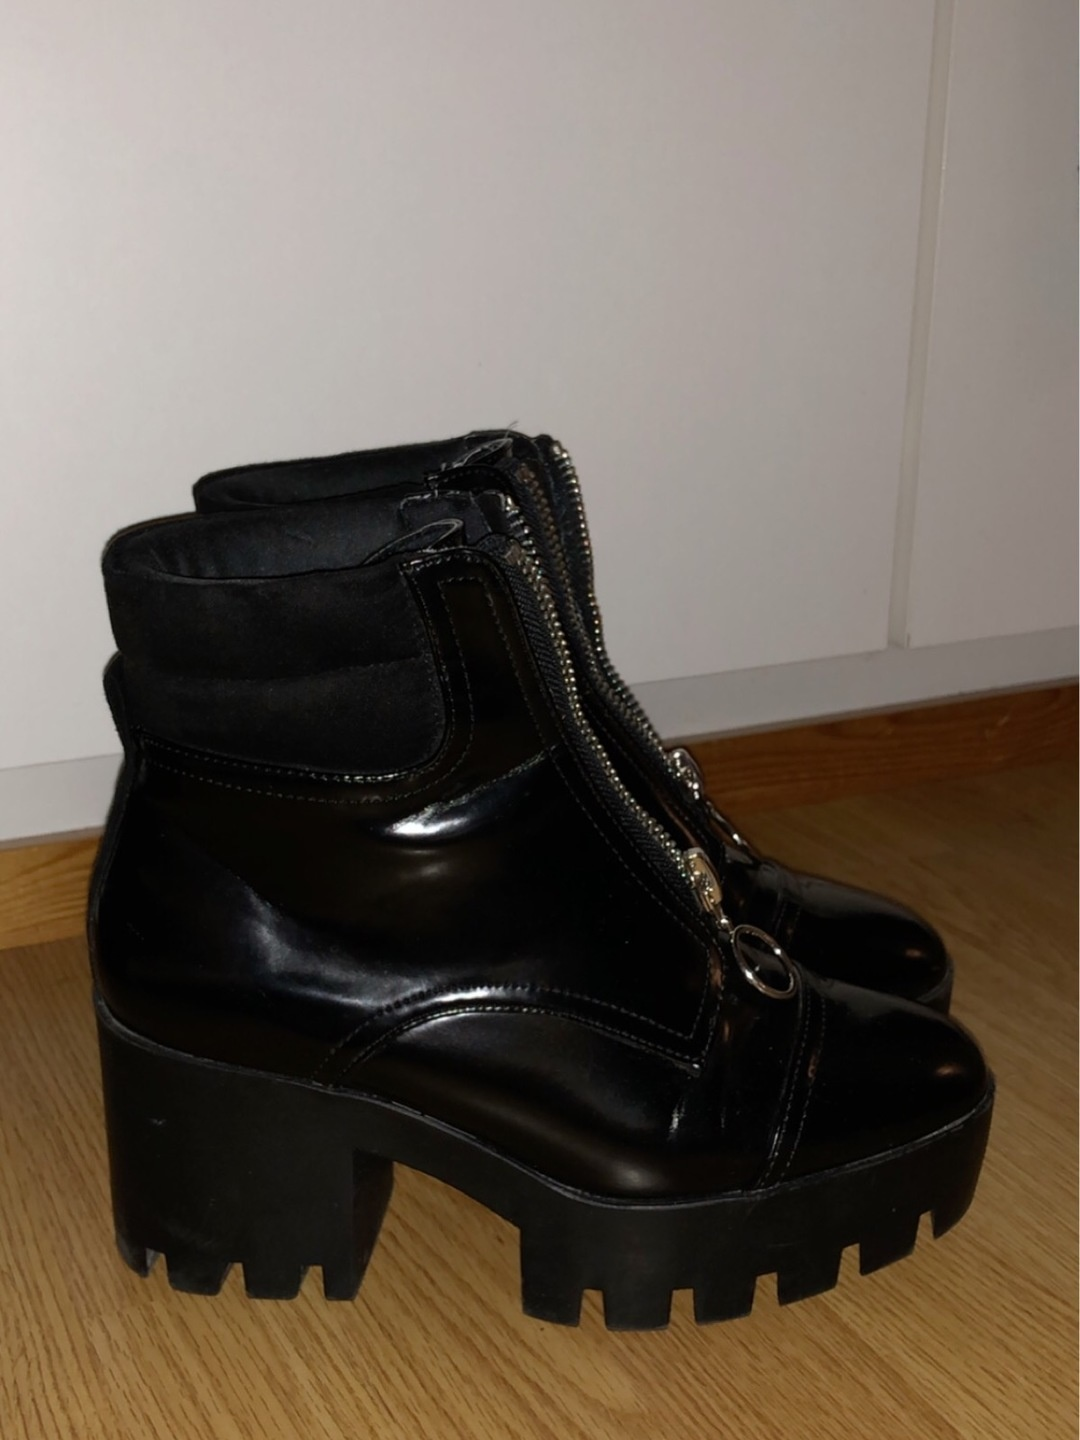 Women's boots - RIVER ISLAND photo 1